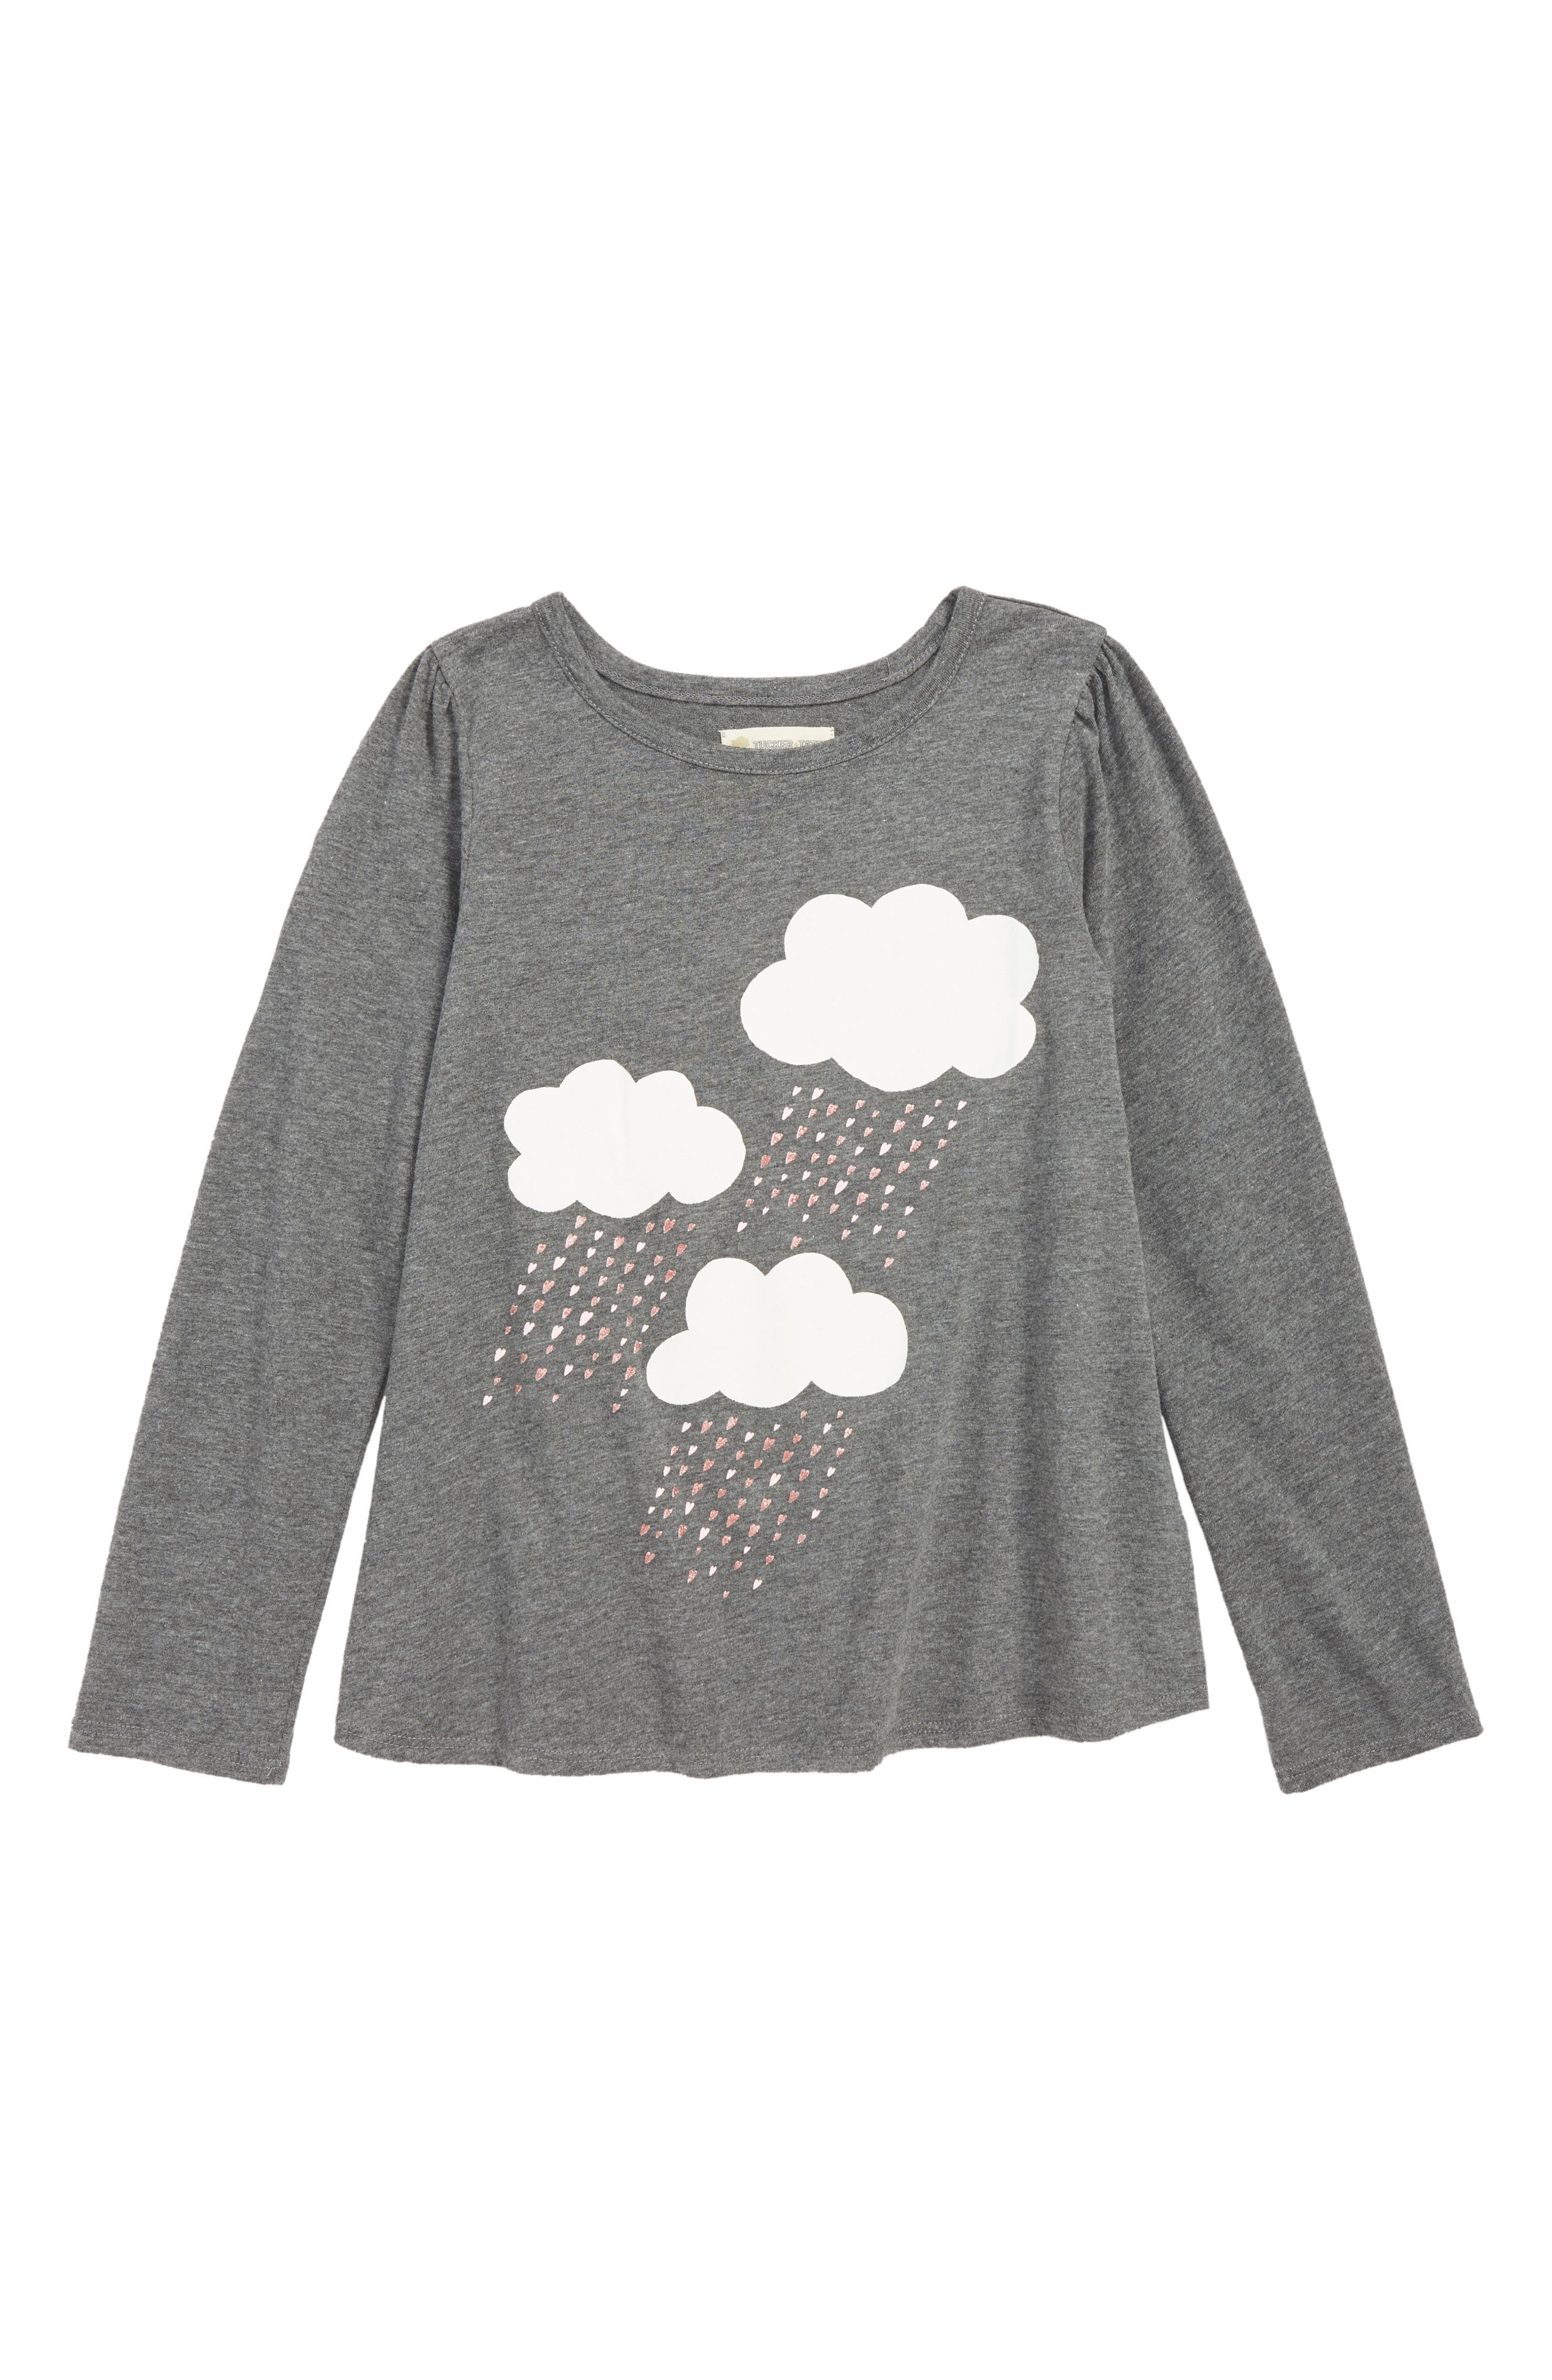 Sparkle Graphic Tee,                             Main thumbnail 1, color,                             GREY MD CHARCOAL HTR CLOUDS